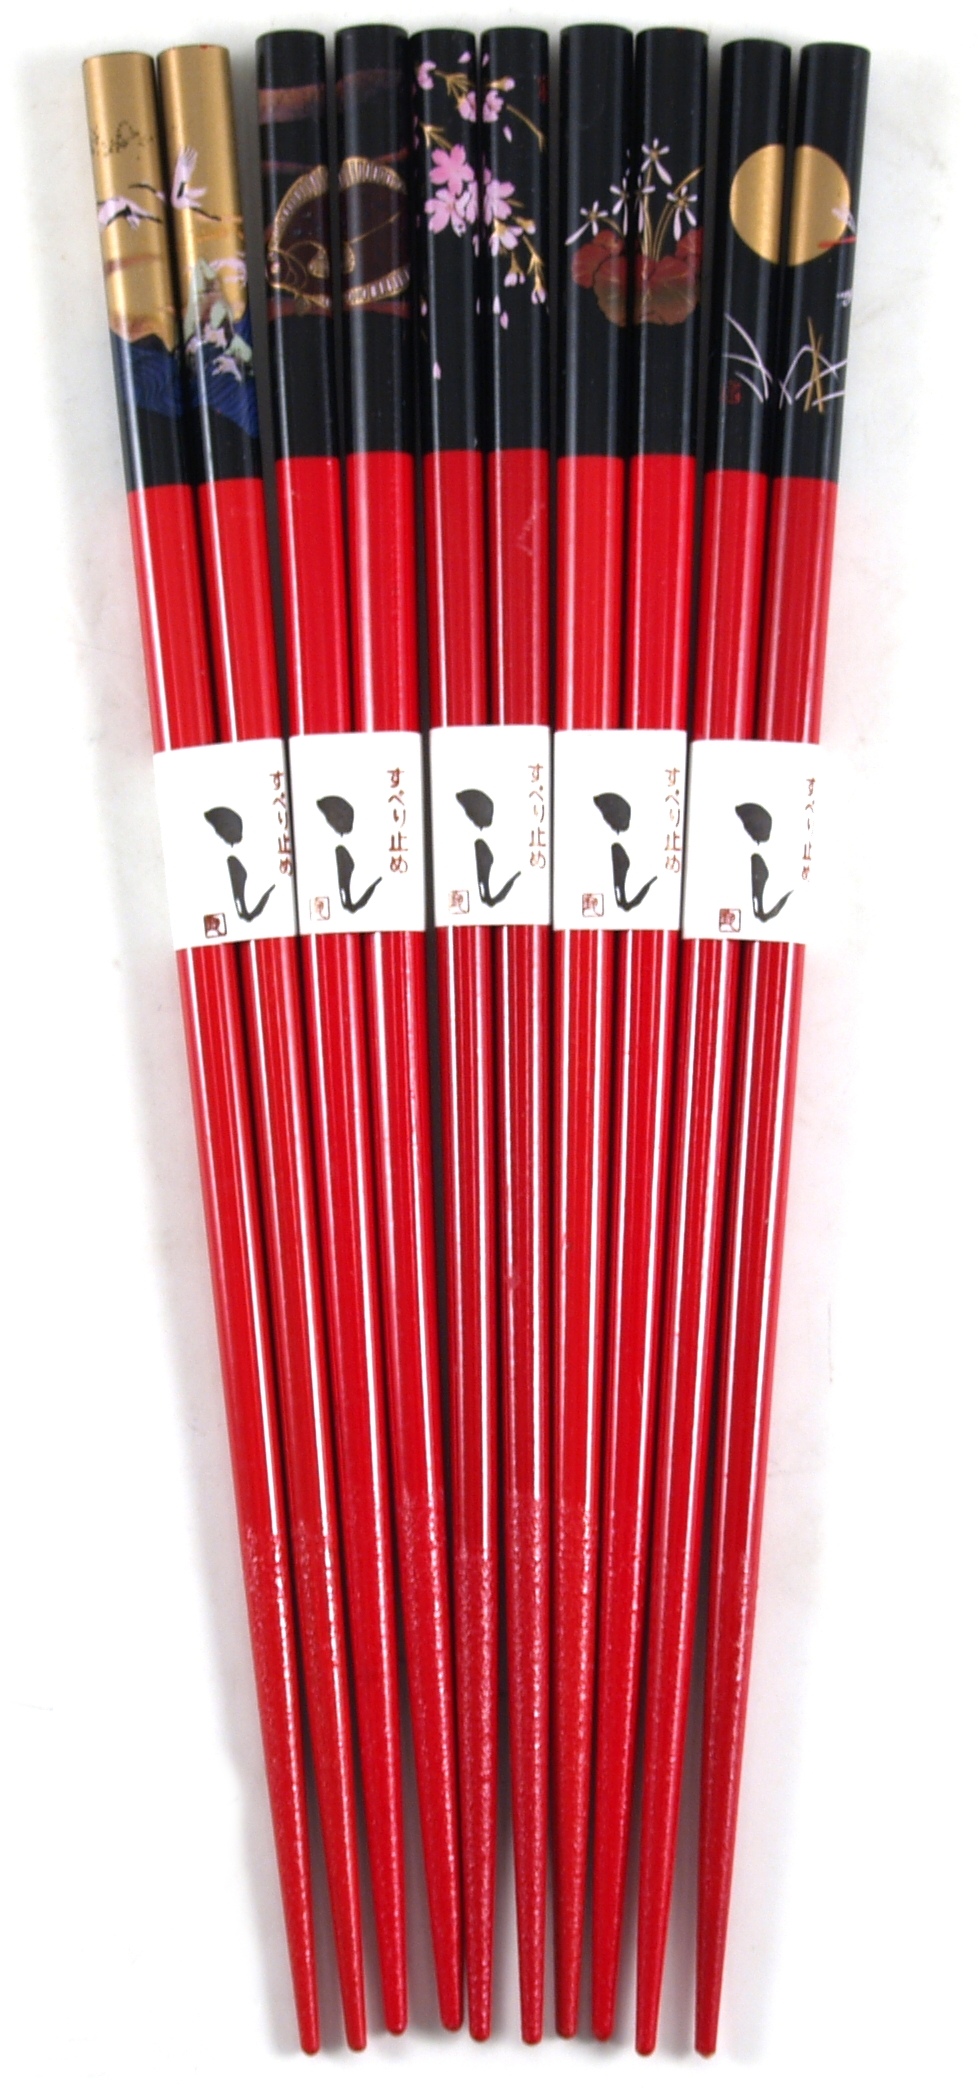 Asian Red Bamboo Chopsticks, 5 Pair